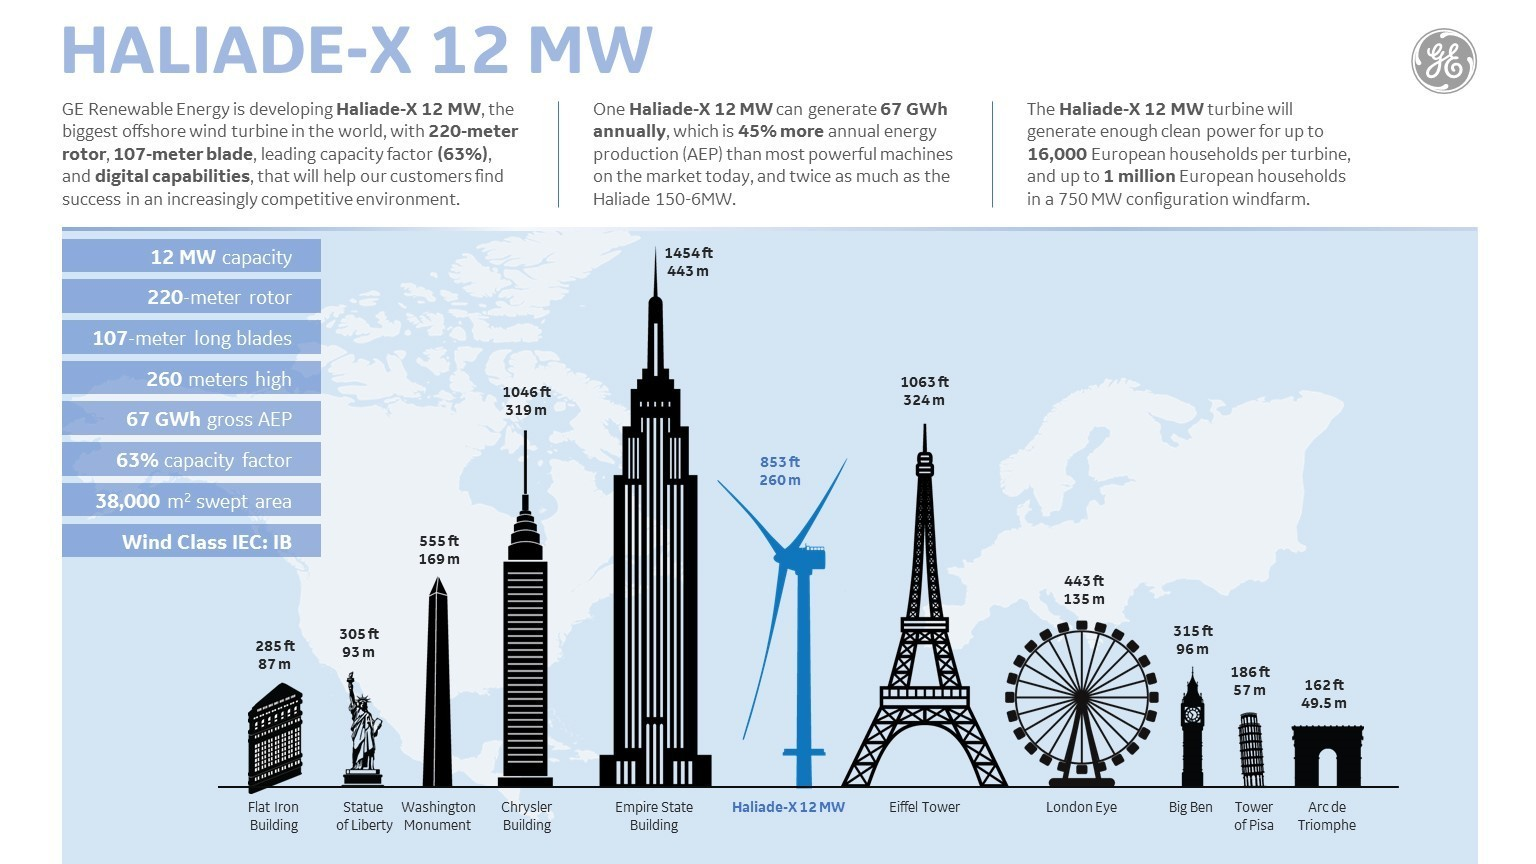 This giant offshore turbine could be the future of wind energy | World  Economic Forum